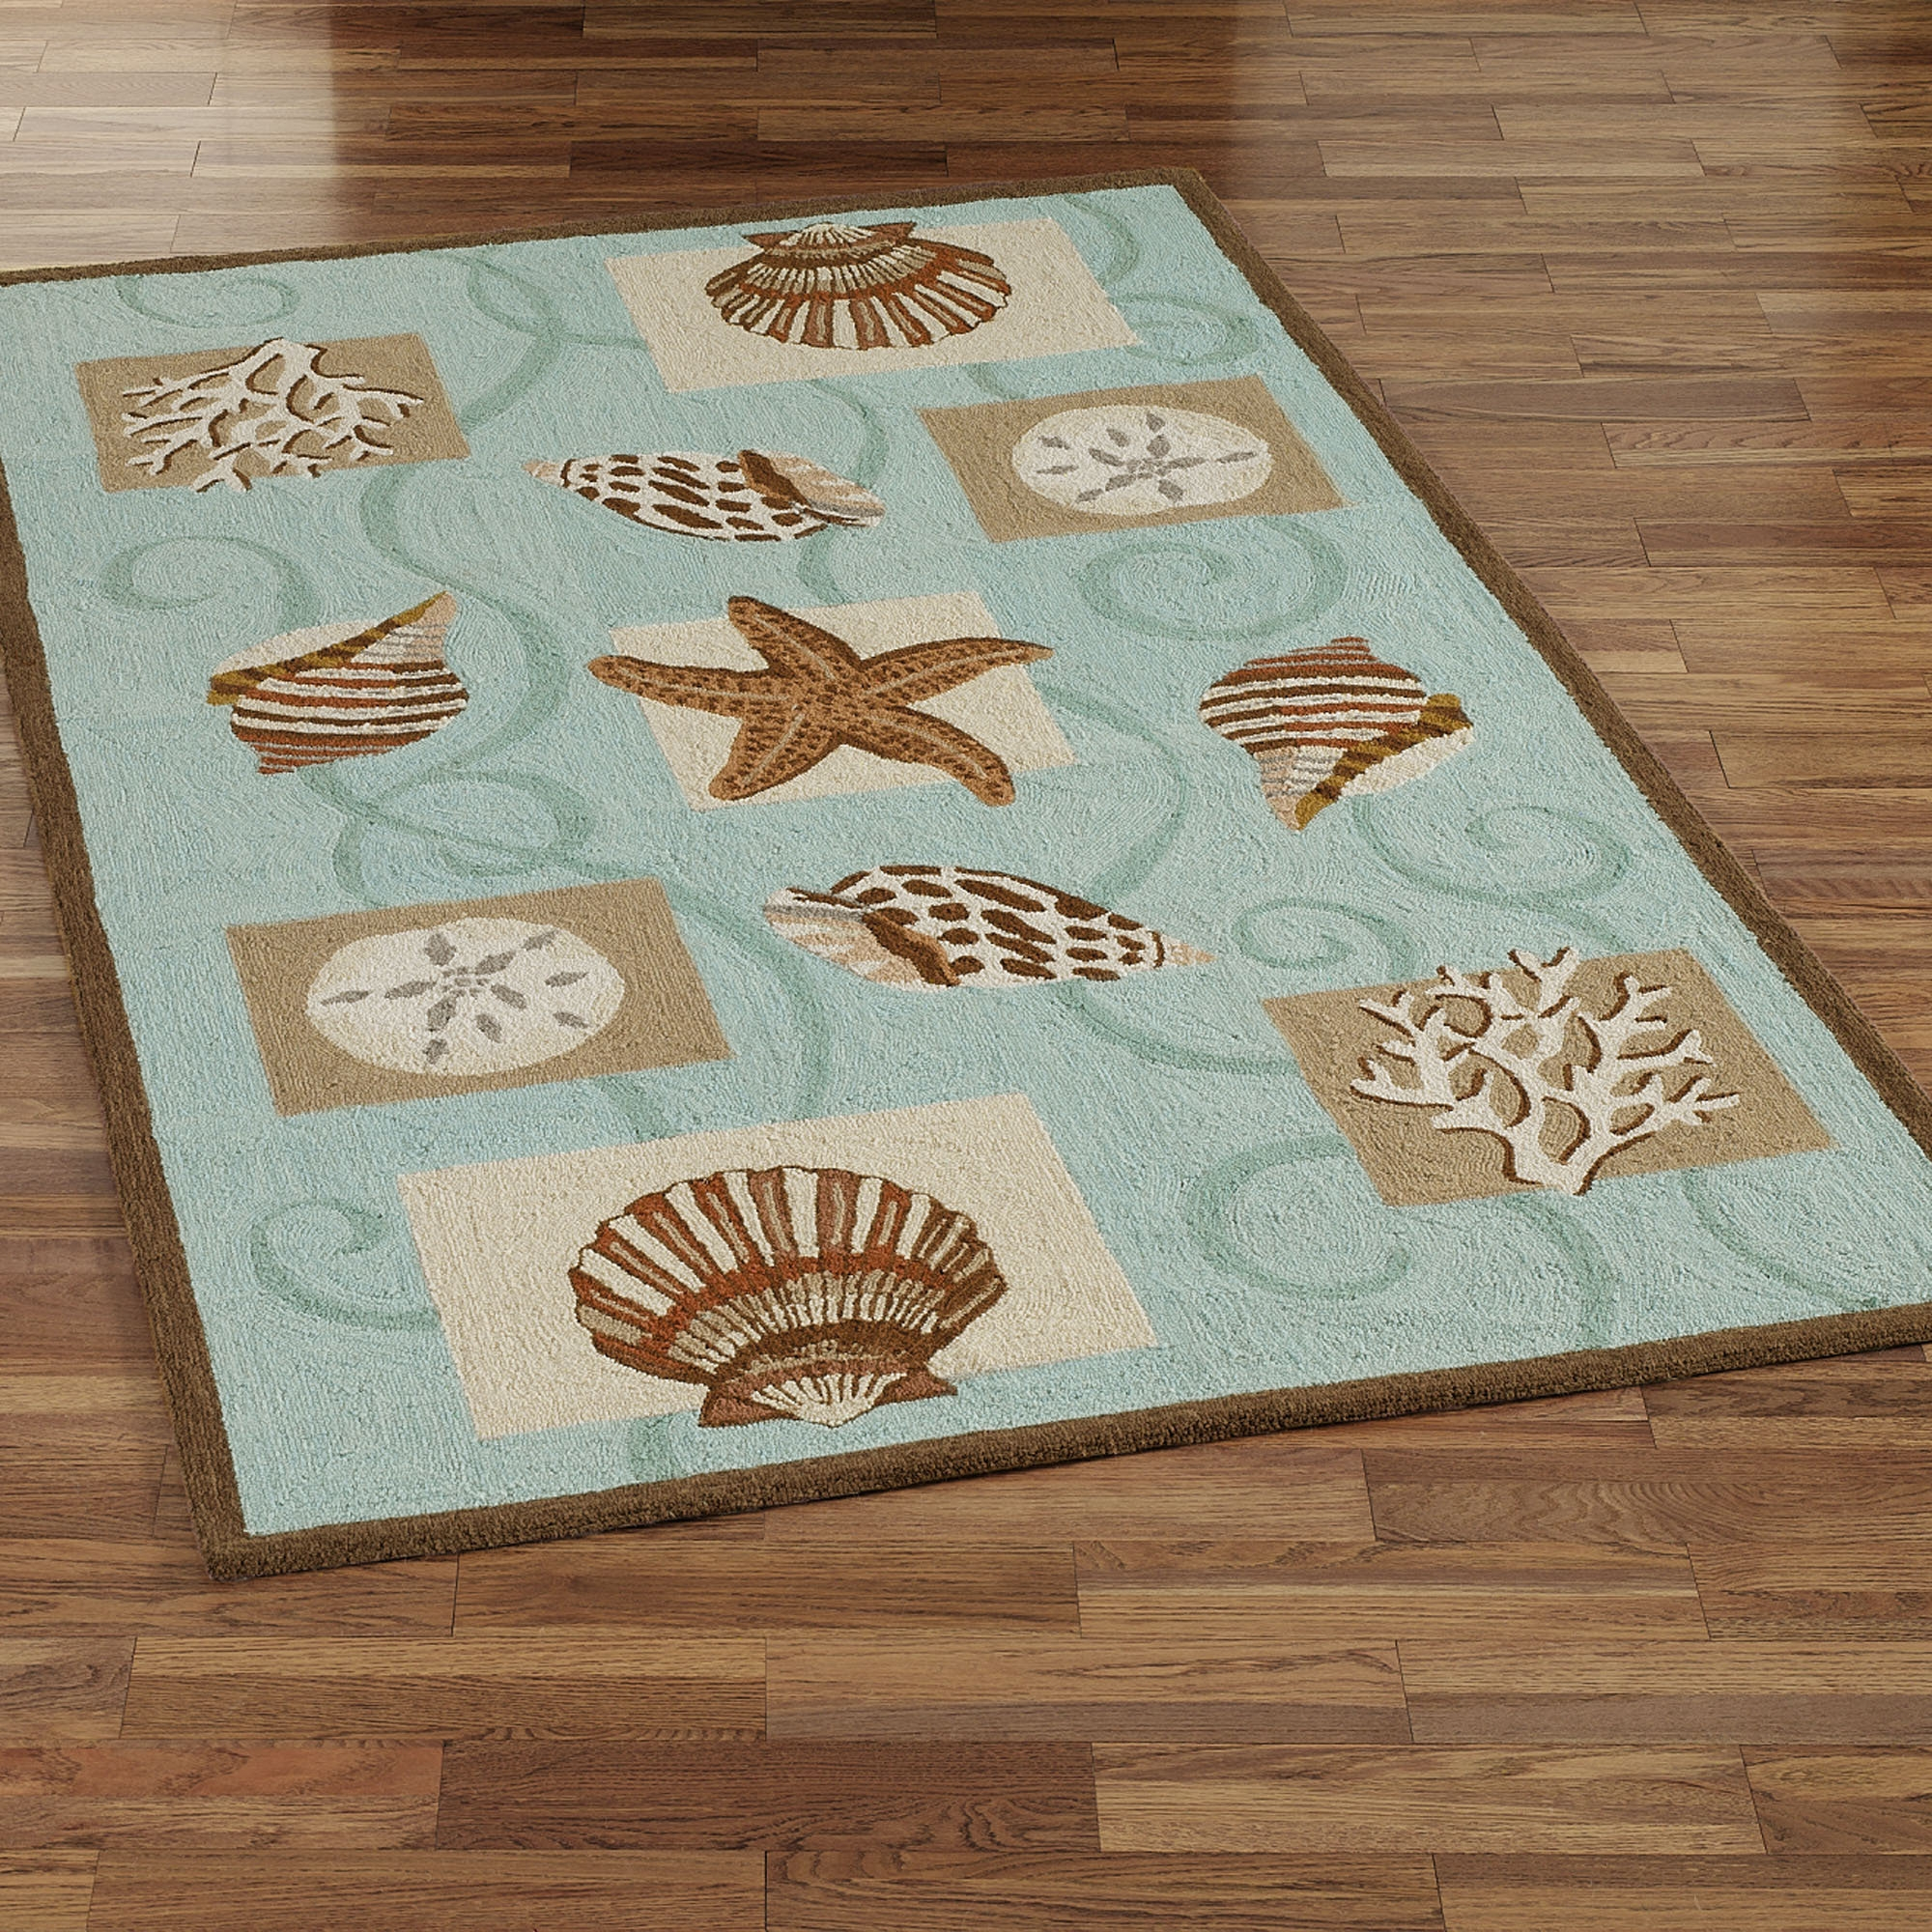 Collection Of Rug Runners For Bathroom - Bathroom rug runner for bathroom decorating ideas